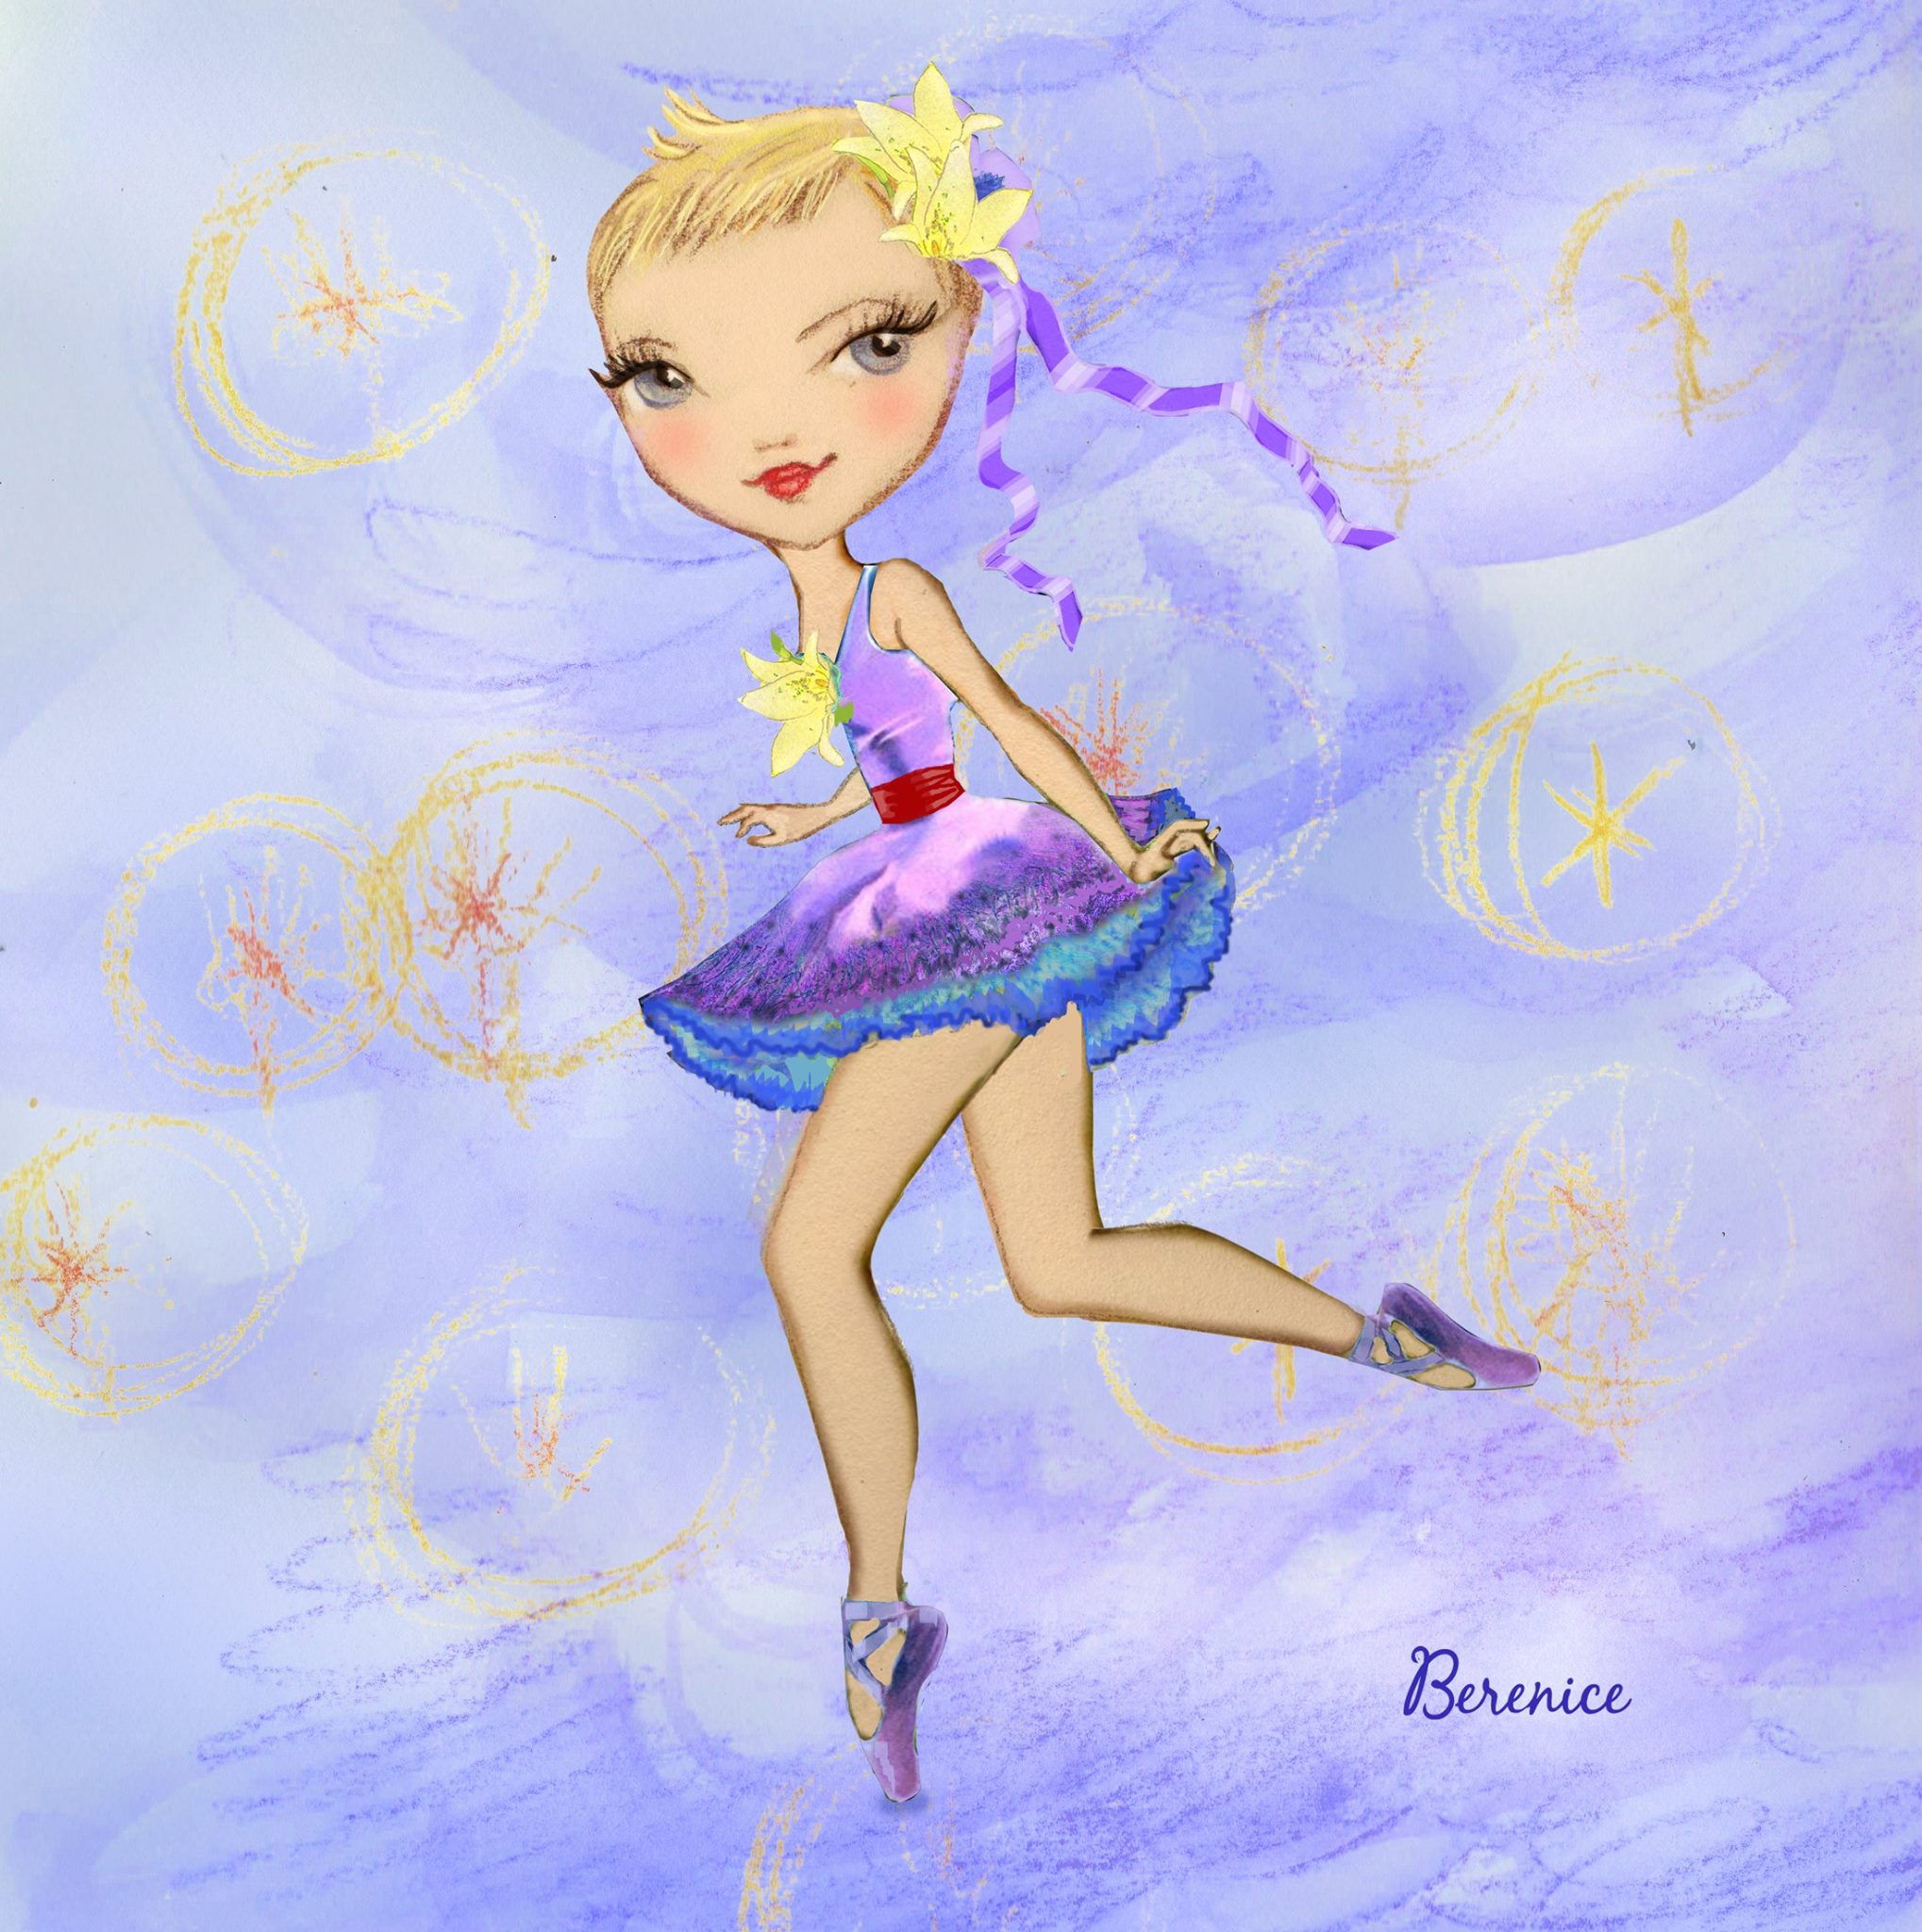 'A Magical Day' illustration for Georgina Butler by Ballet Papier artist Berenice. An illustration of Georgina dressed in a purple dress and matching purple pointe shoes,. She is wearing a yellow flower pinned to the bodice of her dress and a second flower, with a trailing purple ribbon, is in her short blonde-brown hair. She is playfully standing en pointe on one leg, casually kicking the other leg out behind her, and smiling at the viewer.